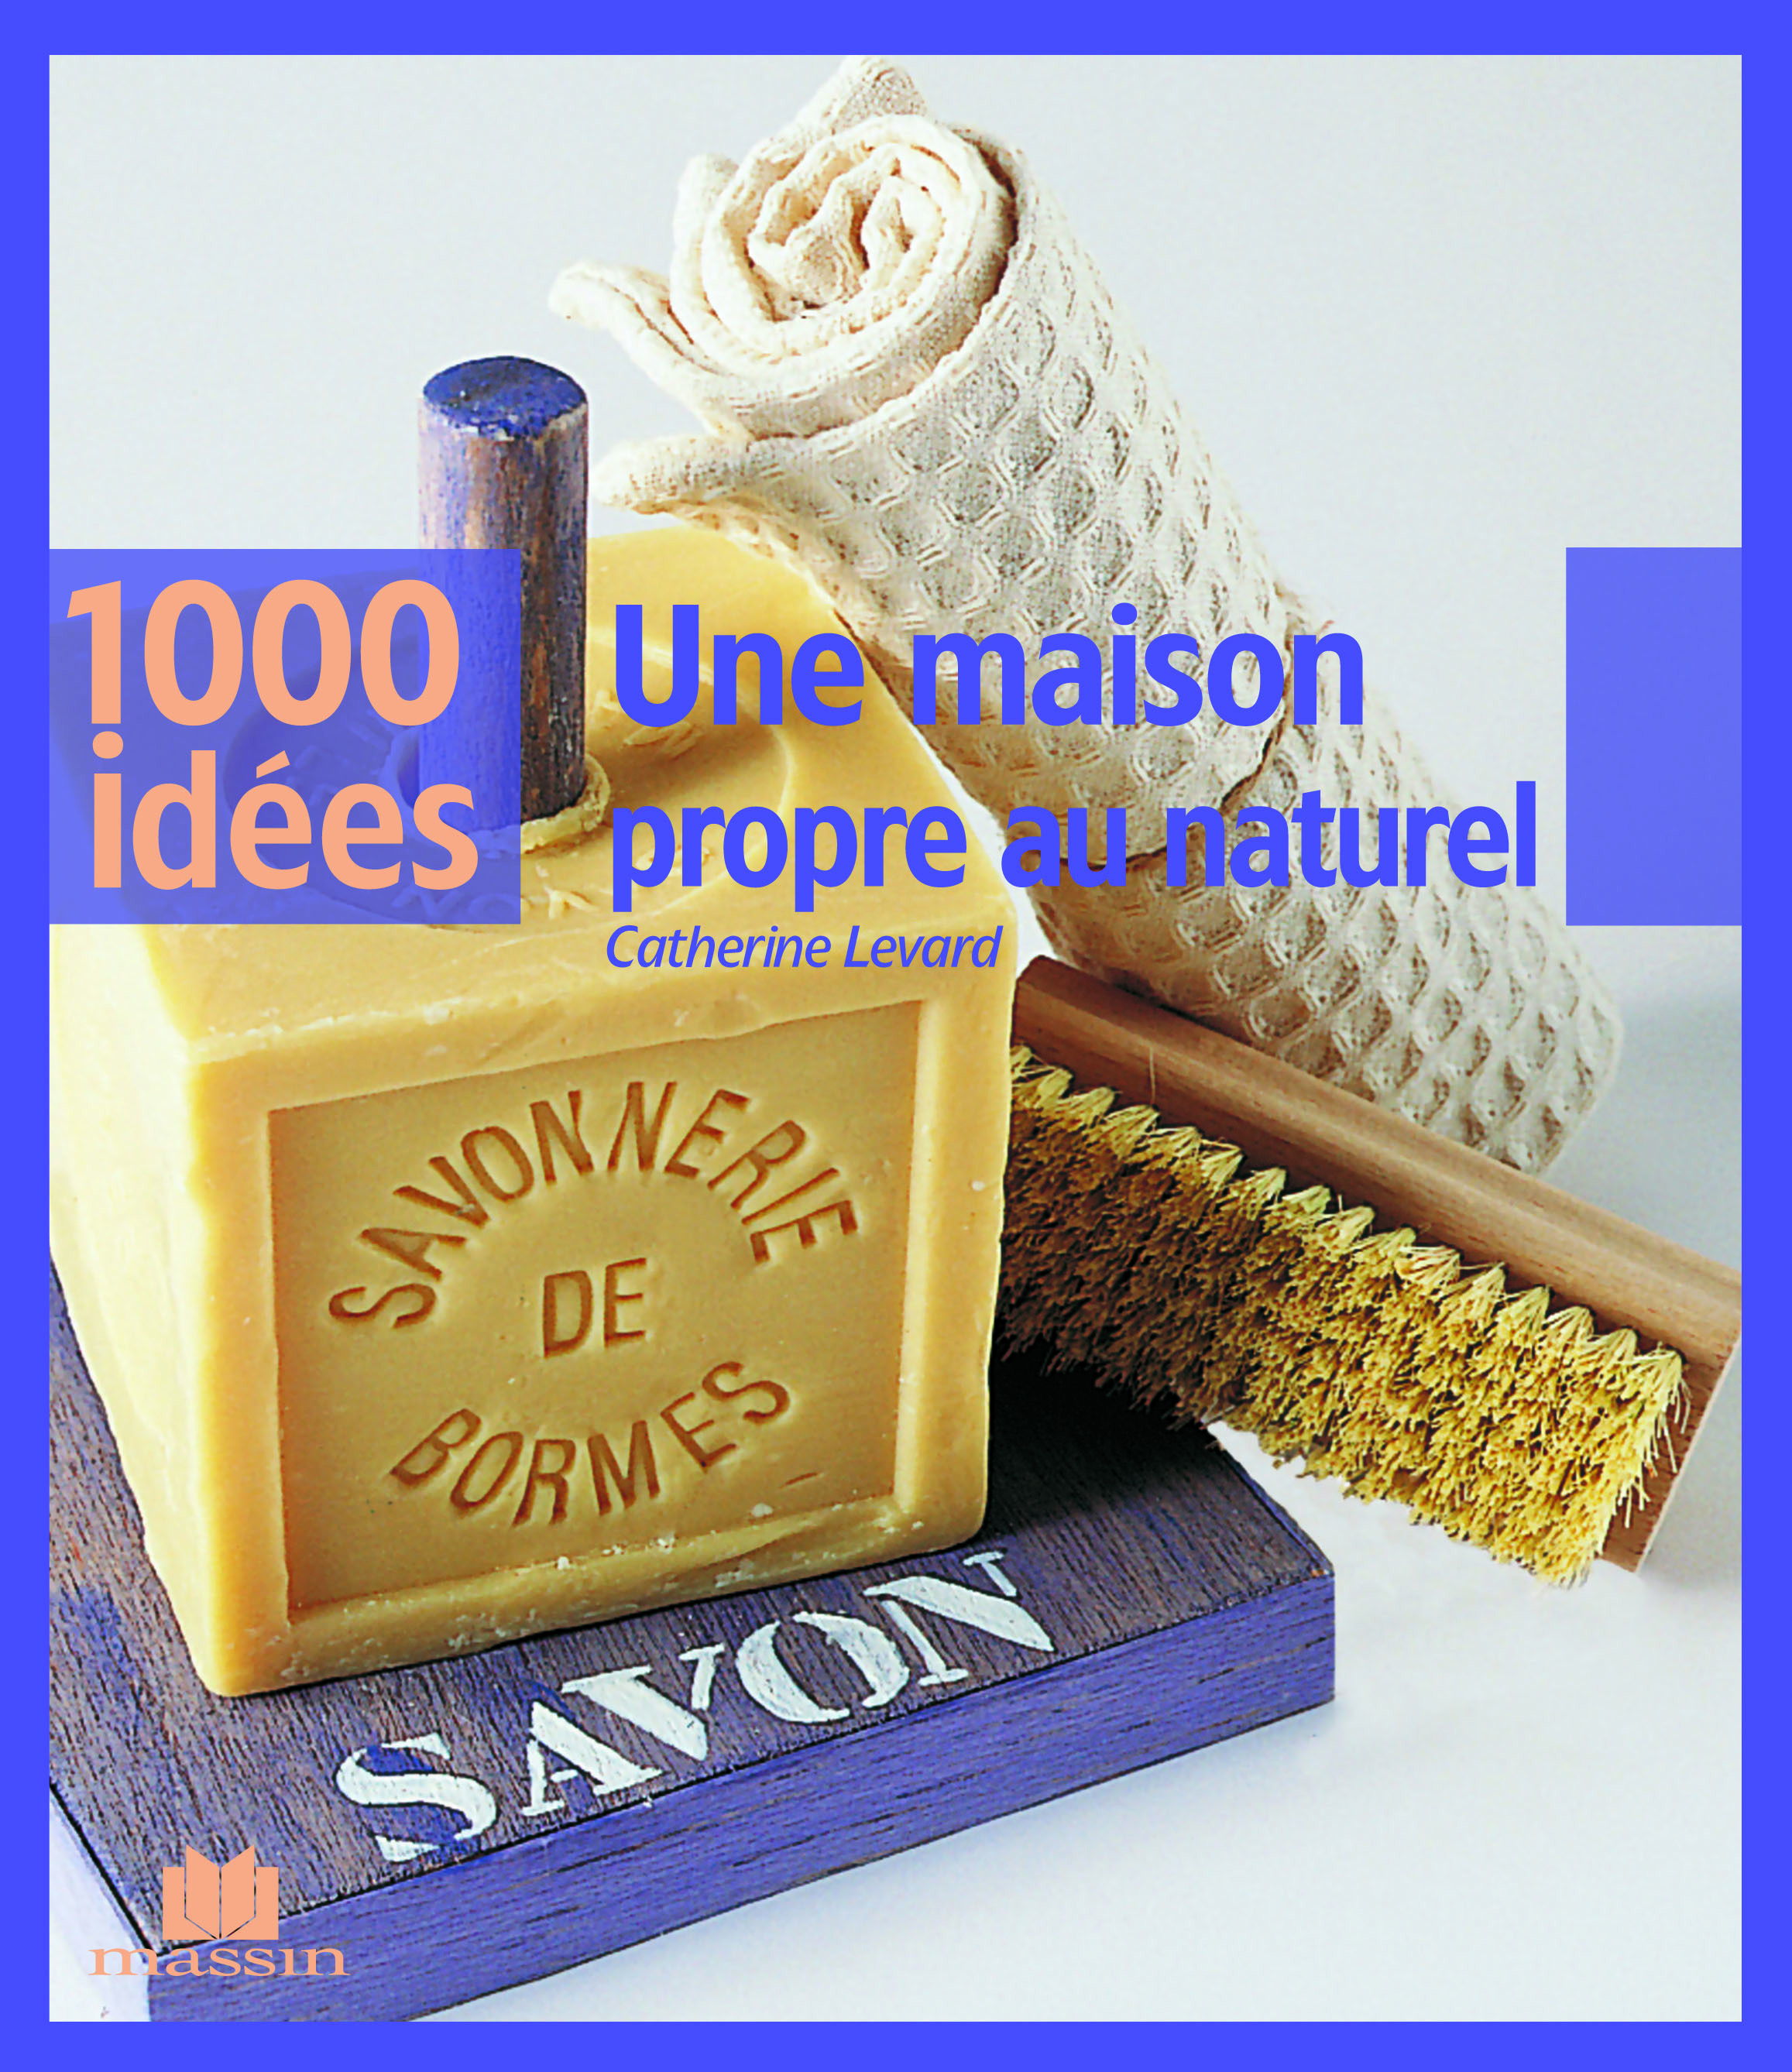 1000 IDEES UNE MAISON PROPRE AU NATUREL